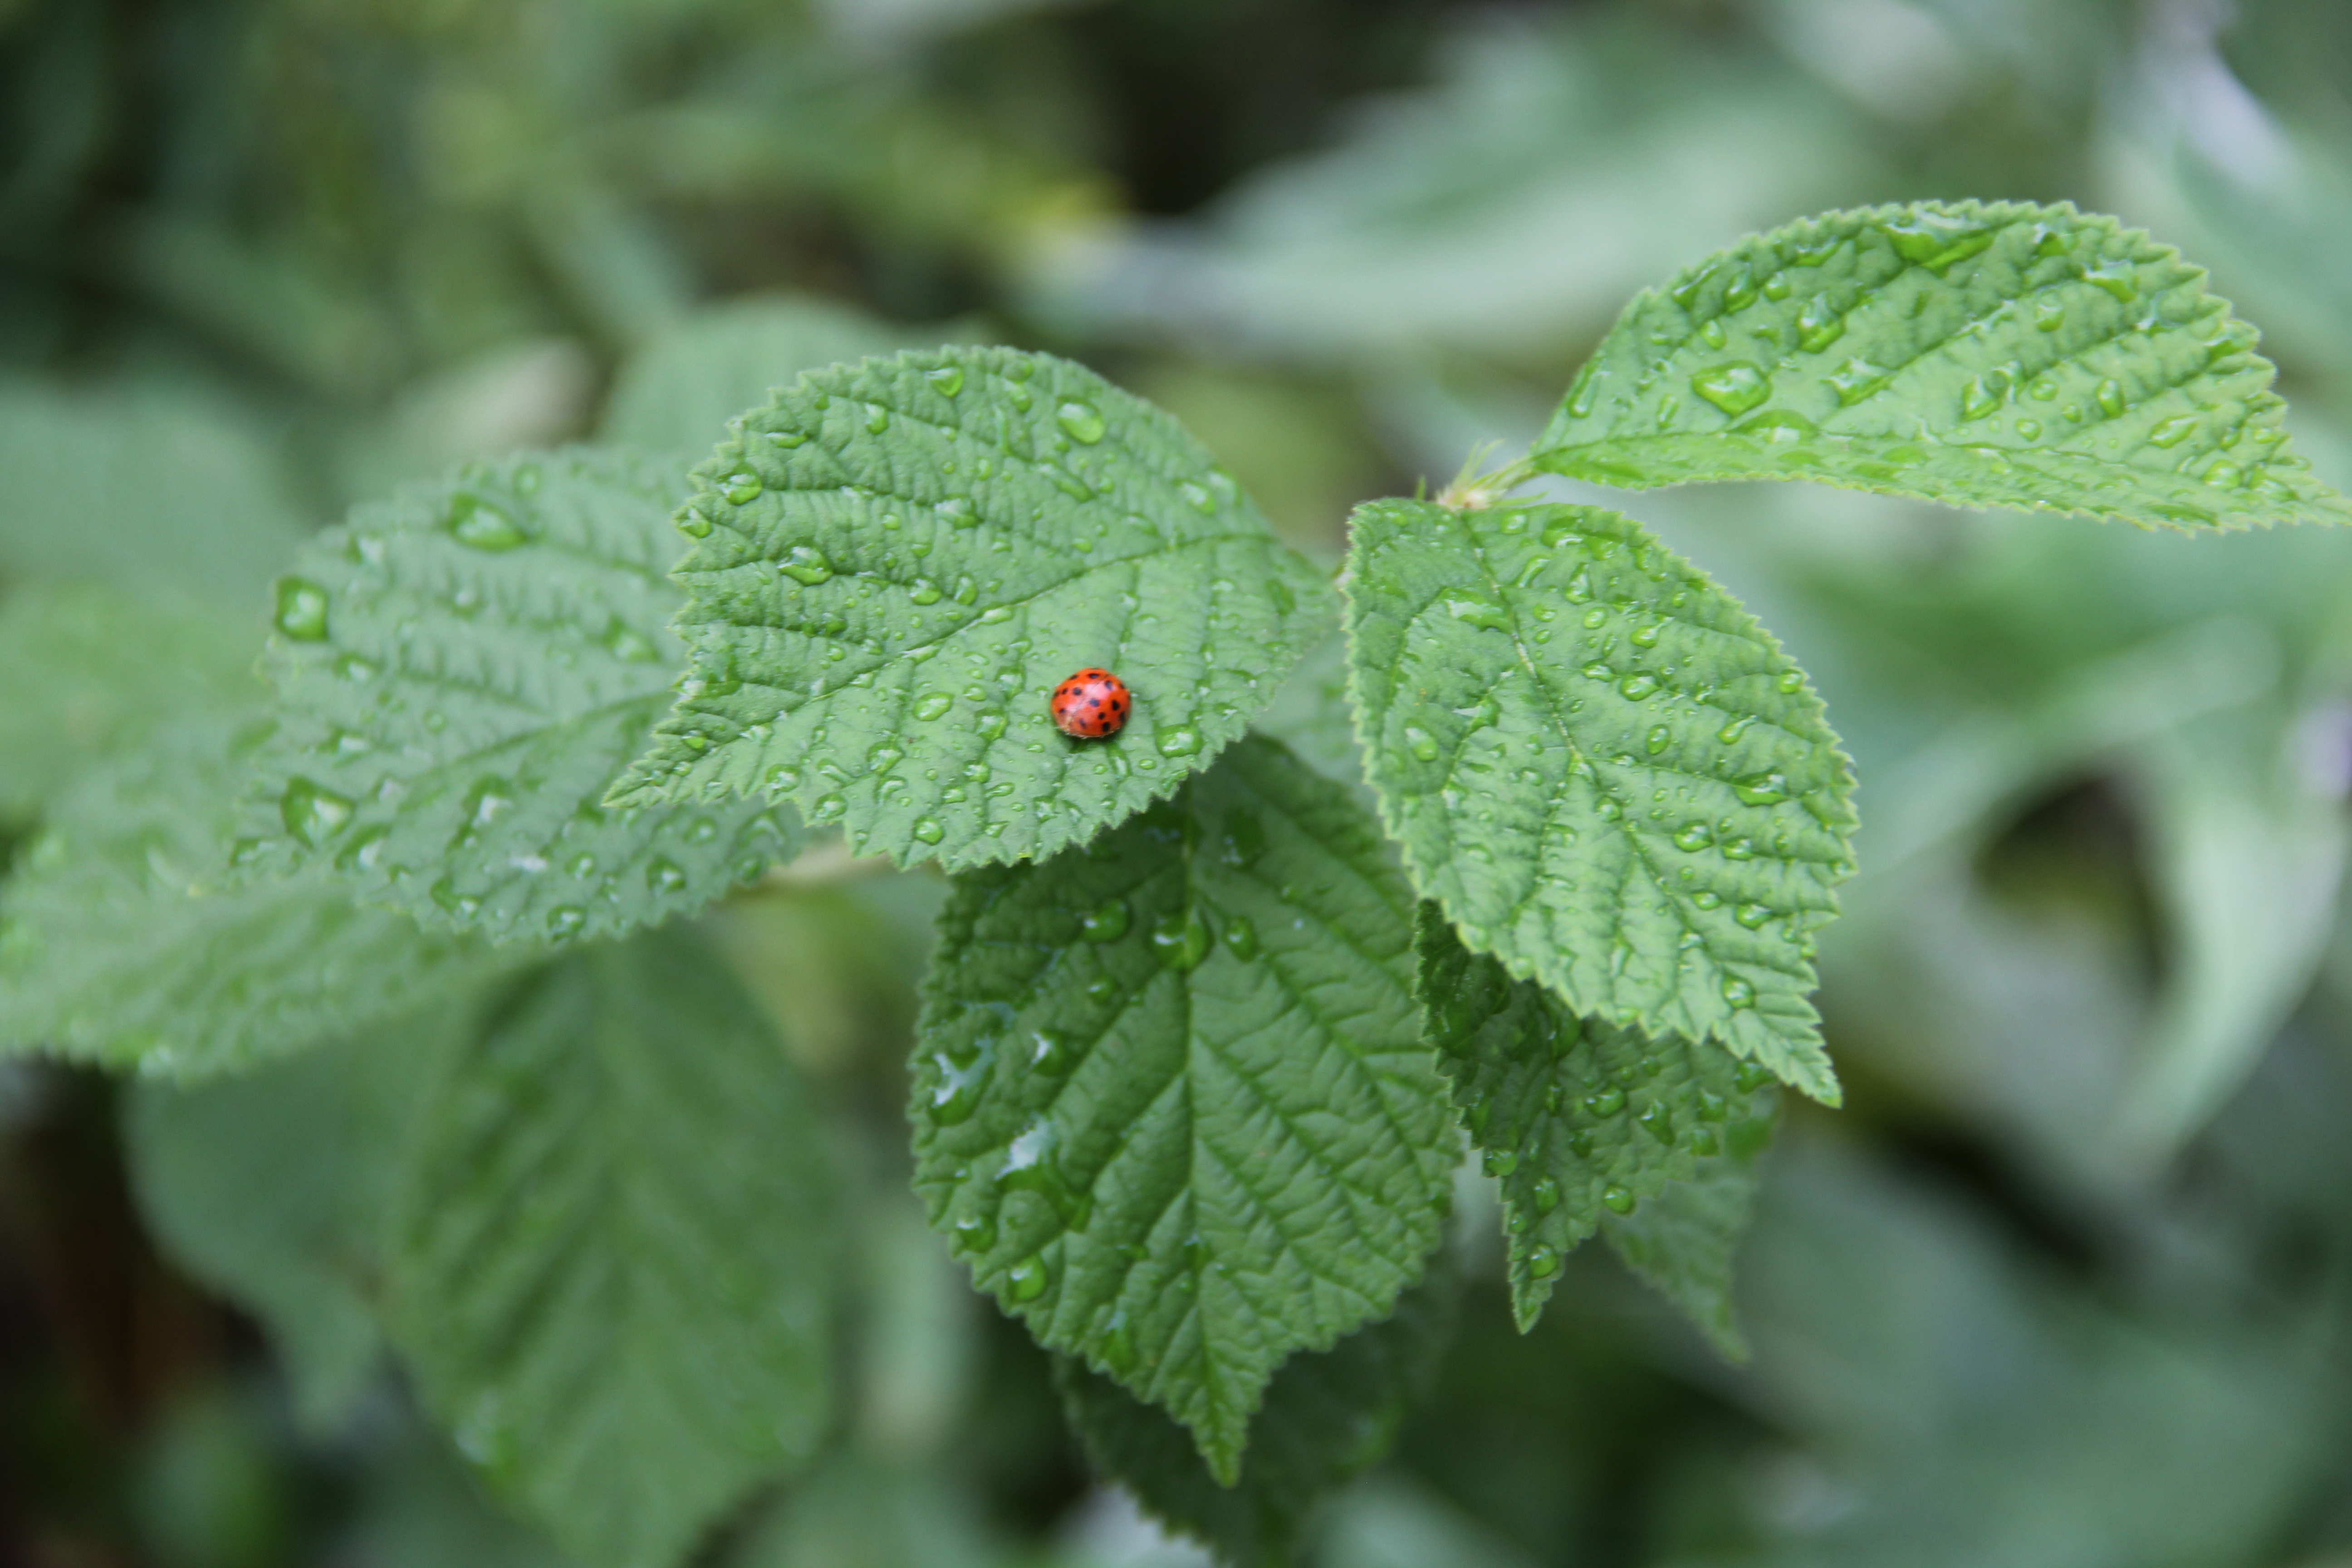 Some insects are helpful in the garden. Ladybugs prey on aphids which are a species of insect that can destroy plants. Before you mush a bug, research it to see if its a garden helper or a harmer